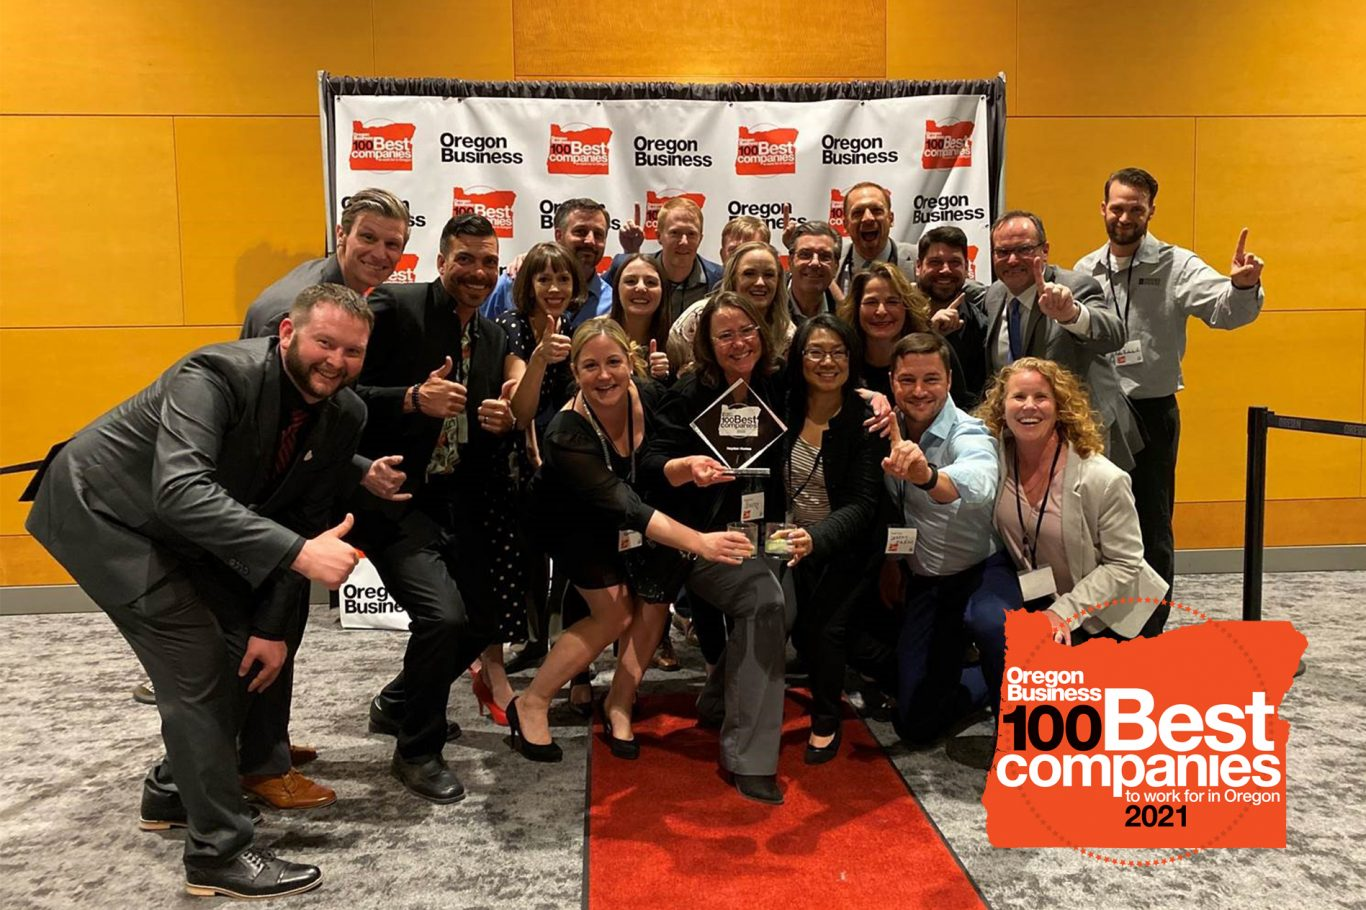 #1 Best Places to Work in Oregon 2021 Photo